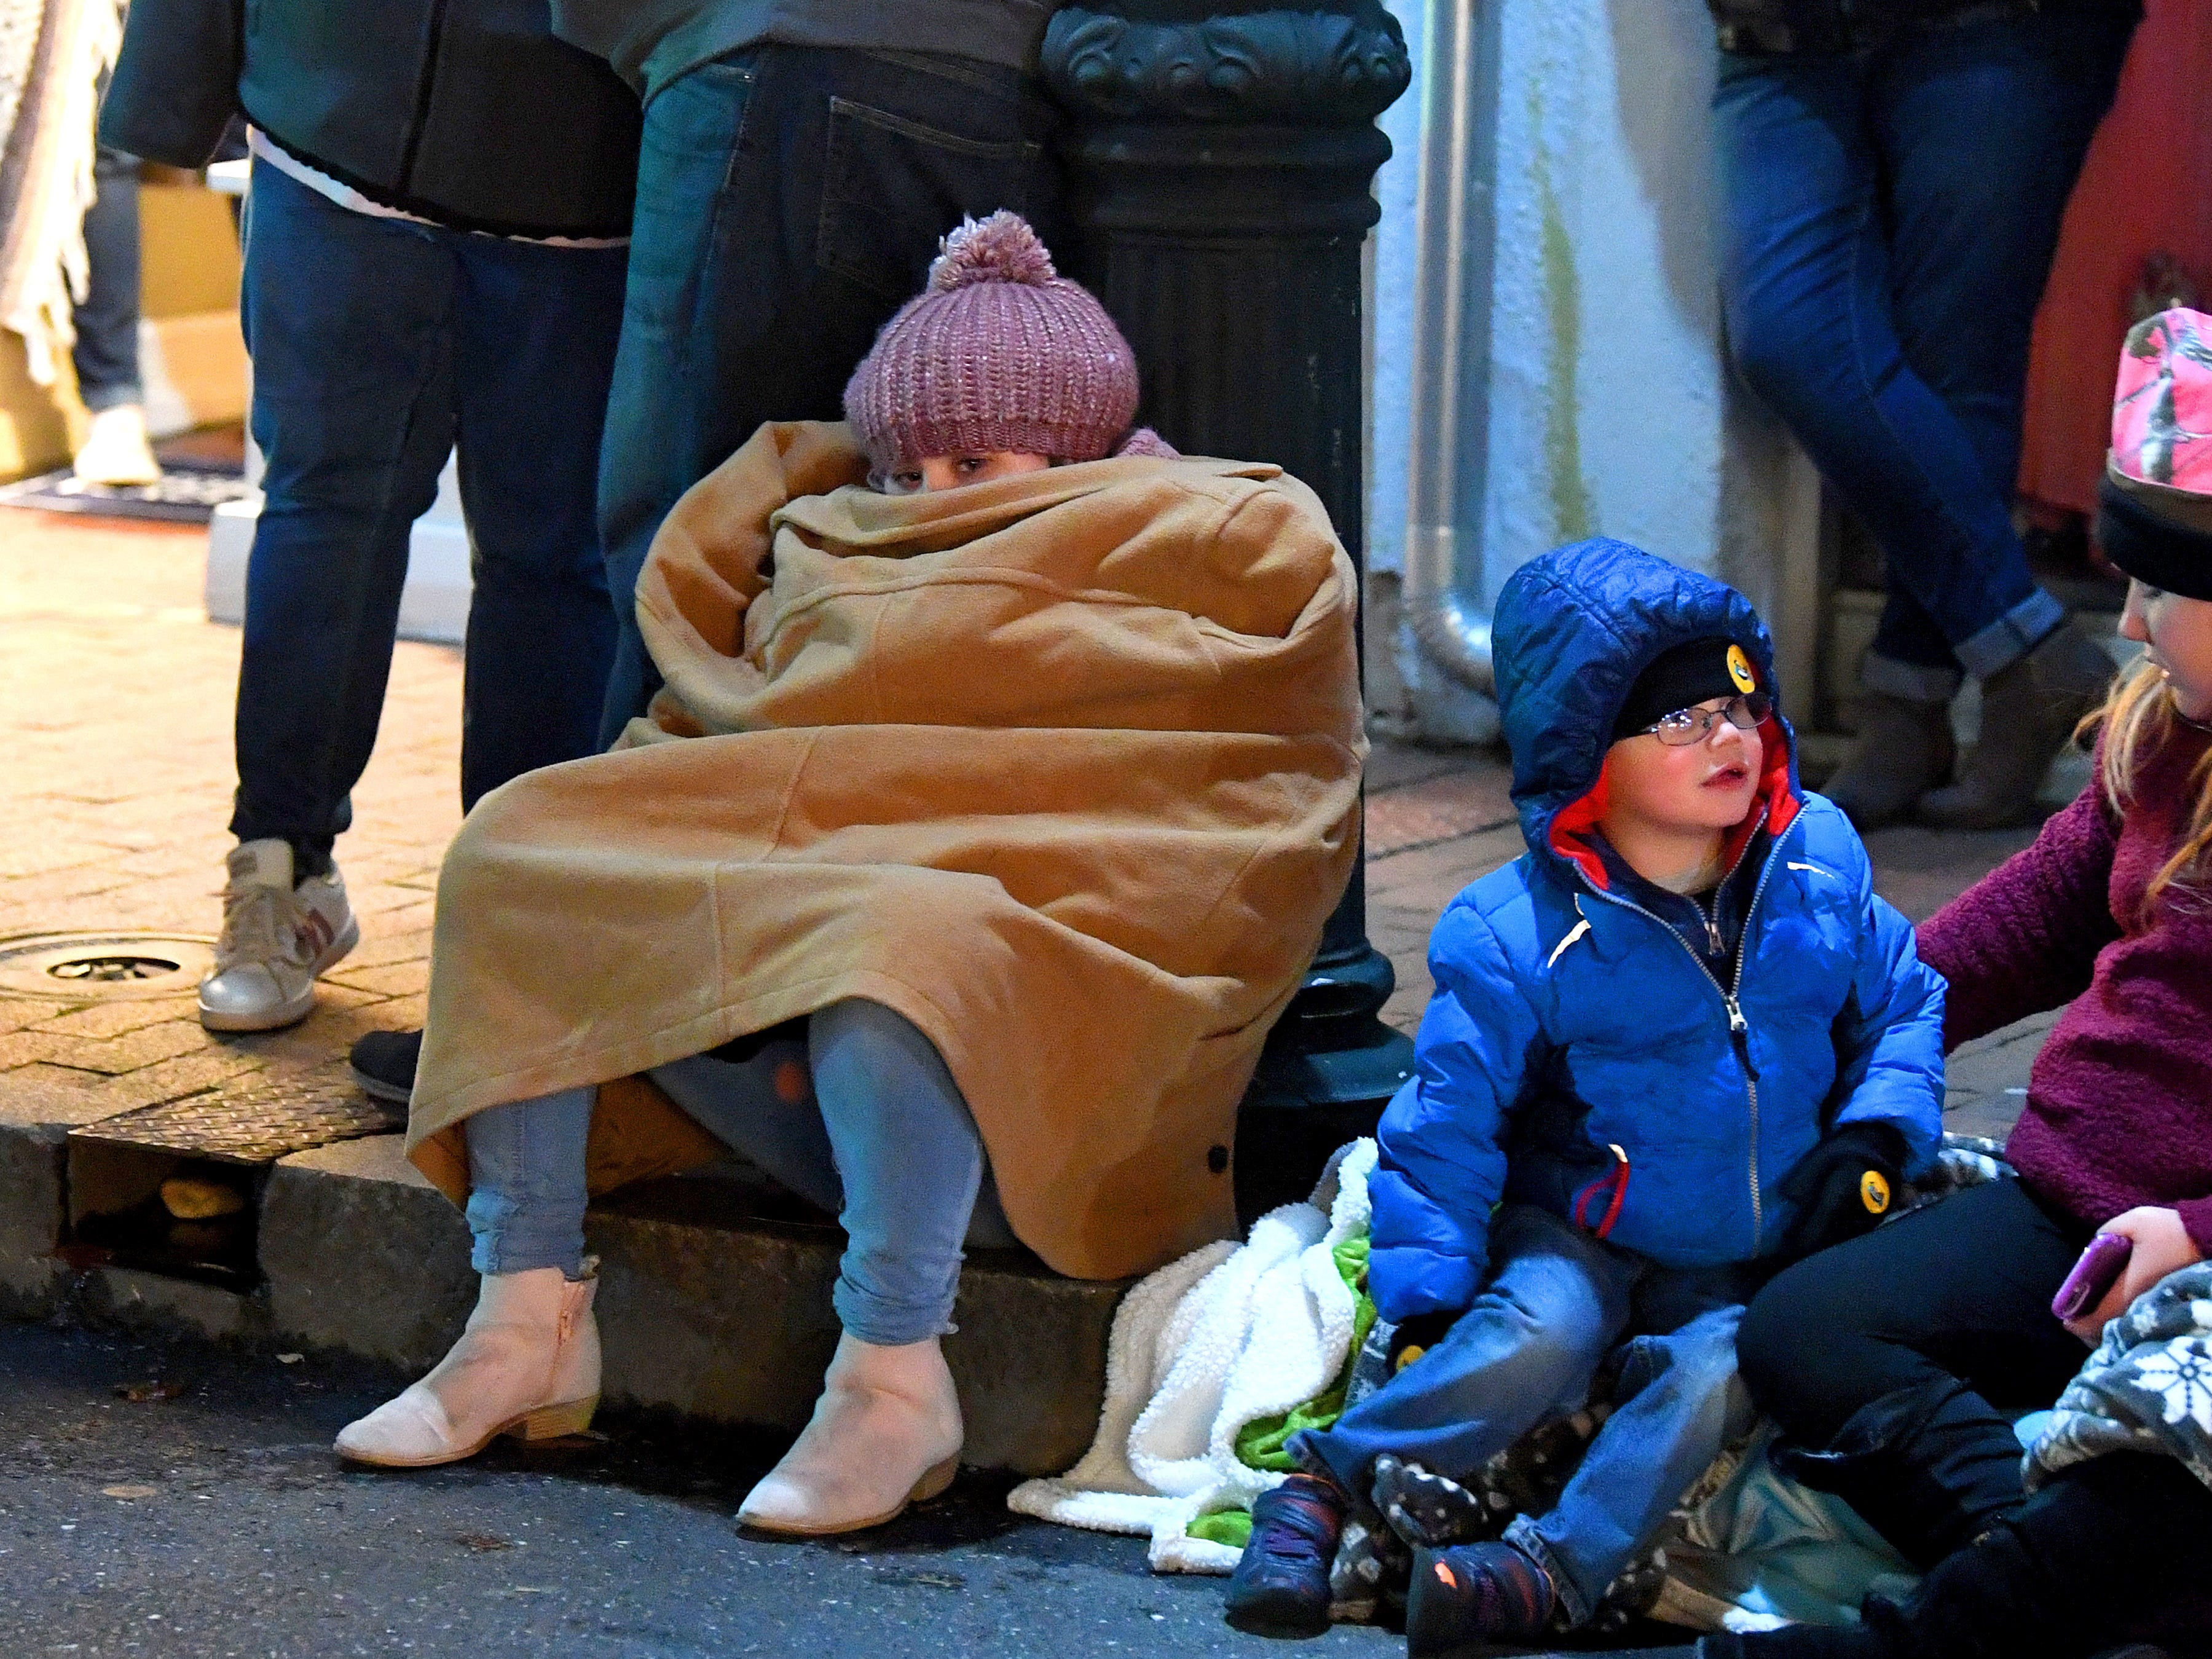 One young parade-goer is bundled up to stay warm while watching the Staunton Christmas Parade on Monday, Nov. 26, 2018.